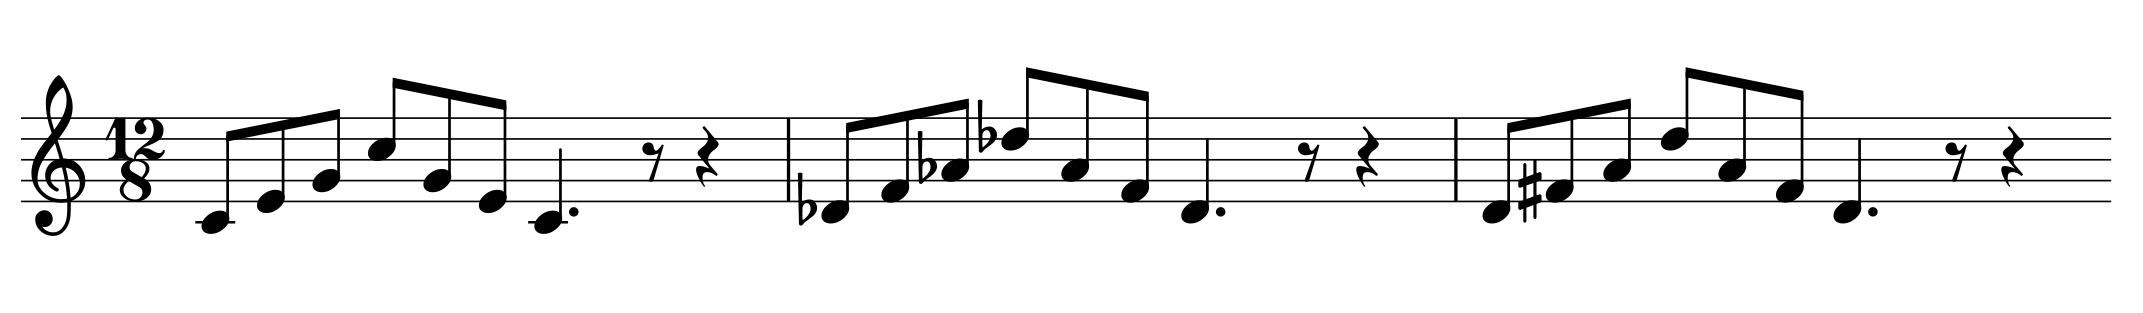 chromatic_vocalise_example-1